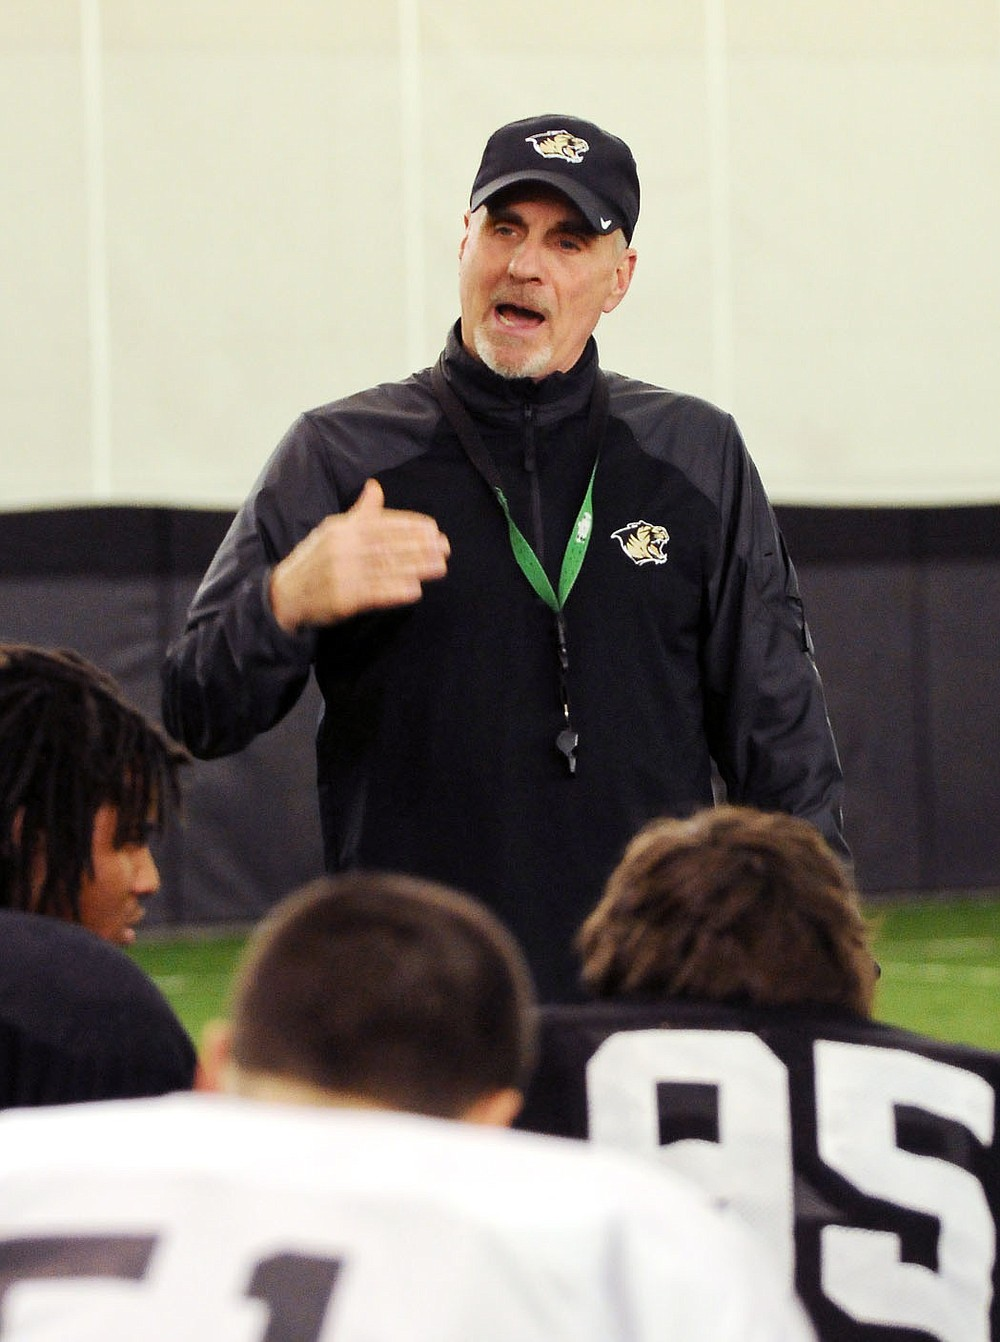 Barry Lunney, who served as Bentonville's football coach from 2005-14, is one of seven people who will be inducted to the Bentonville High School Athletic Hall of Honor in October. Lunney directed the Tigers to a 97-25 record and four state championships, including his final game as Bentonville beat Fayetteville 24-21 in the 2014 Class 7A state championship game.